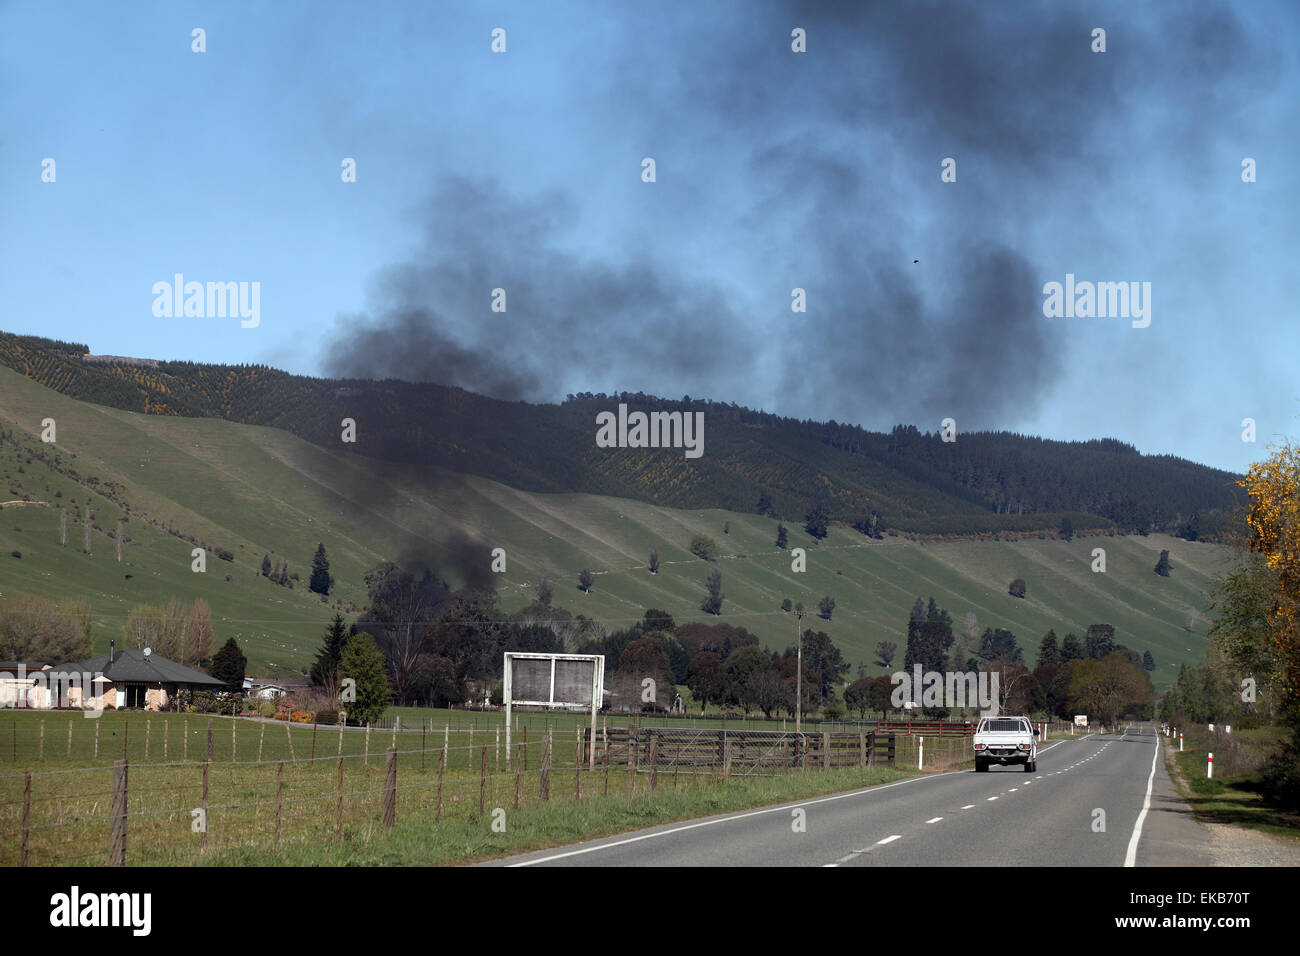 Fire at farm in Tapawera, New Zealand - Stock Image